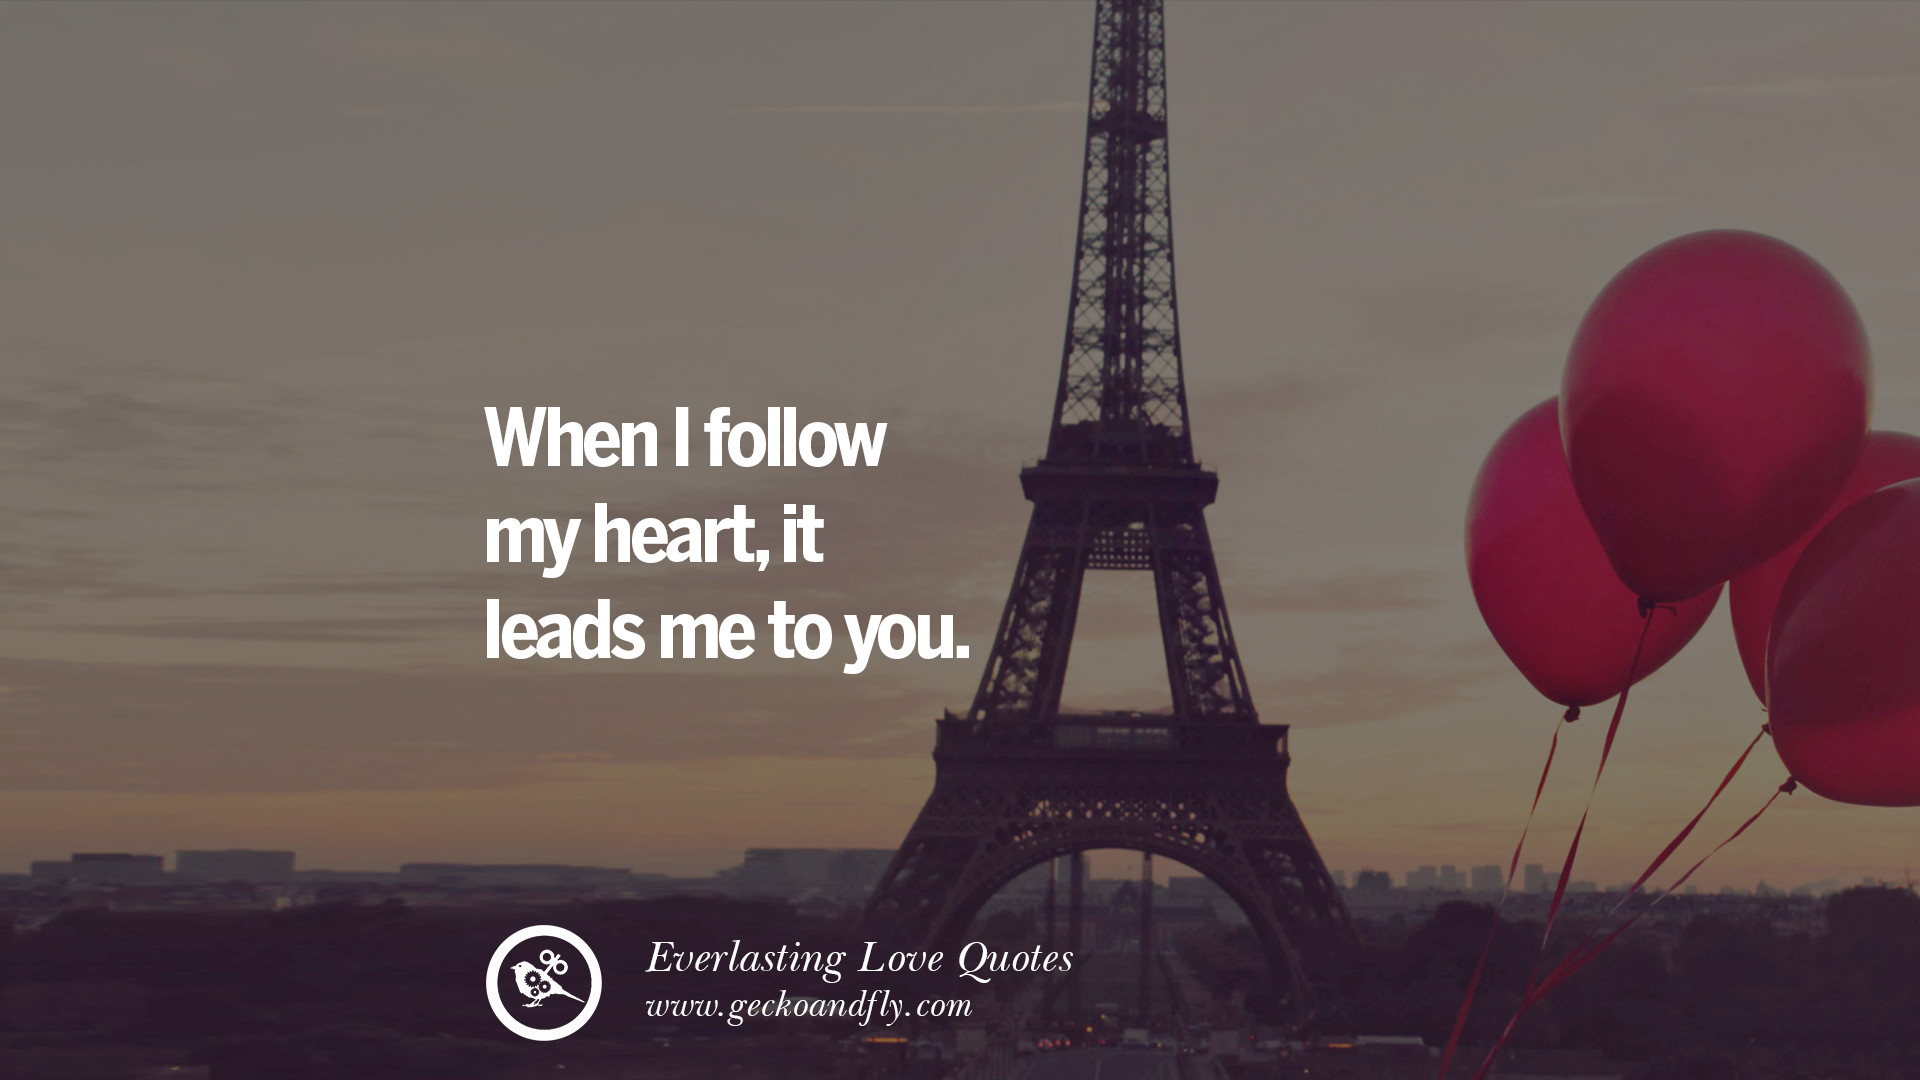 Fall Wallpaper For My Phone 18 Romantic Love Quotes For Him And Her On Valentine Day